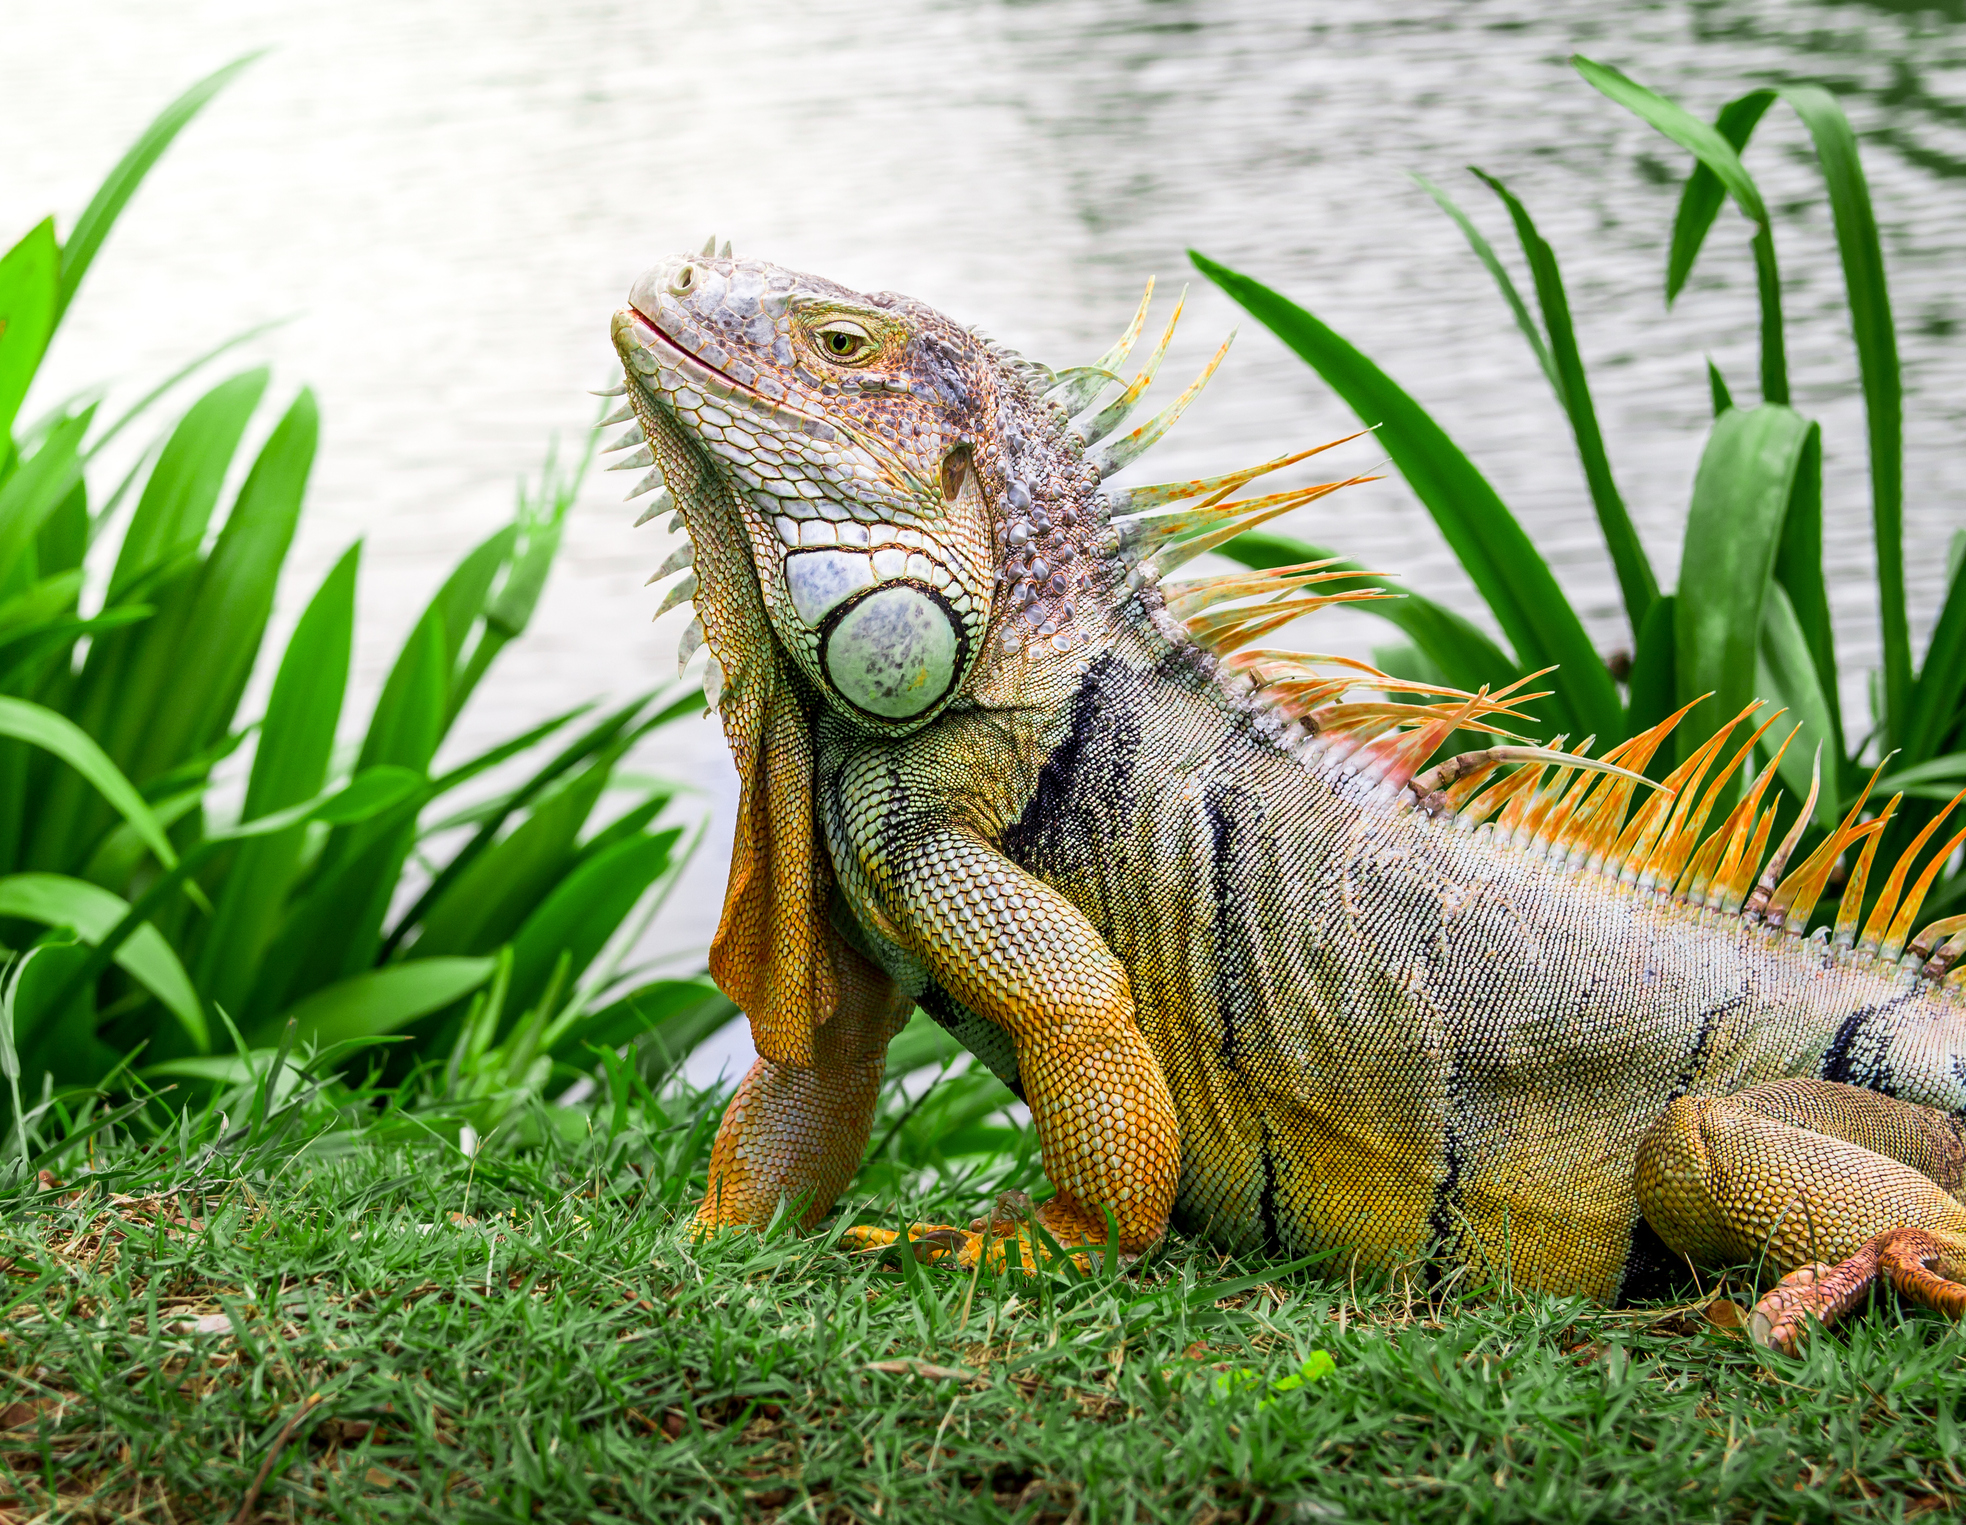 Wanna get rid of an iguana? On second thought, don't just 'shoot them up,' Florida says